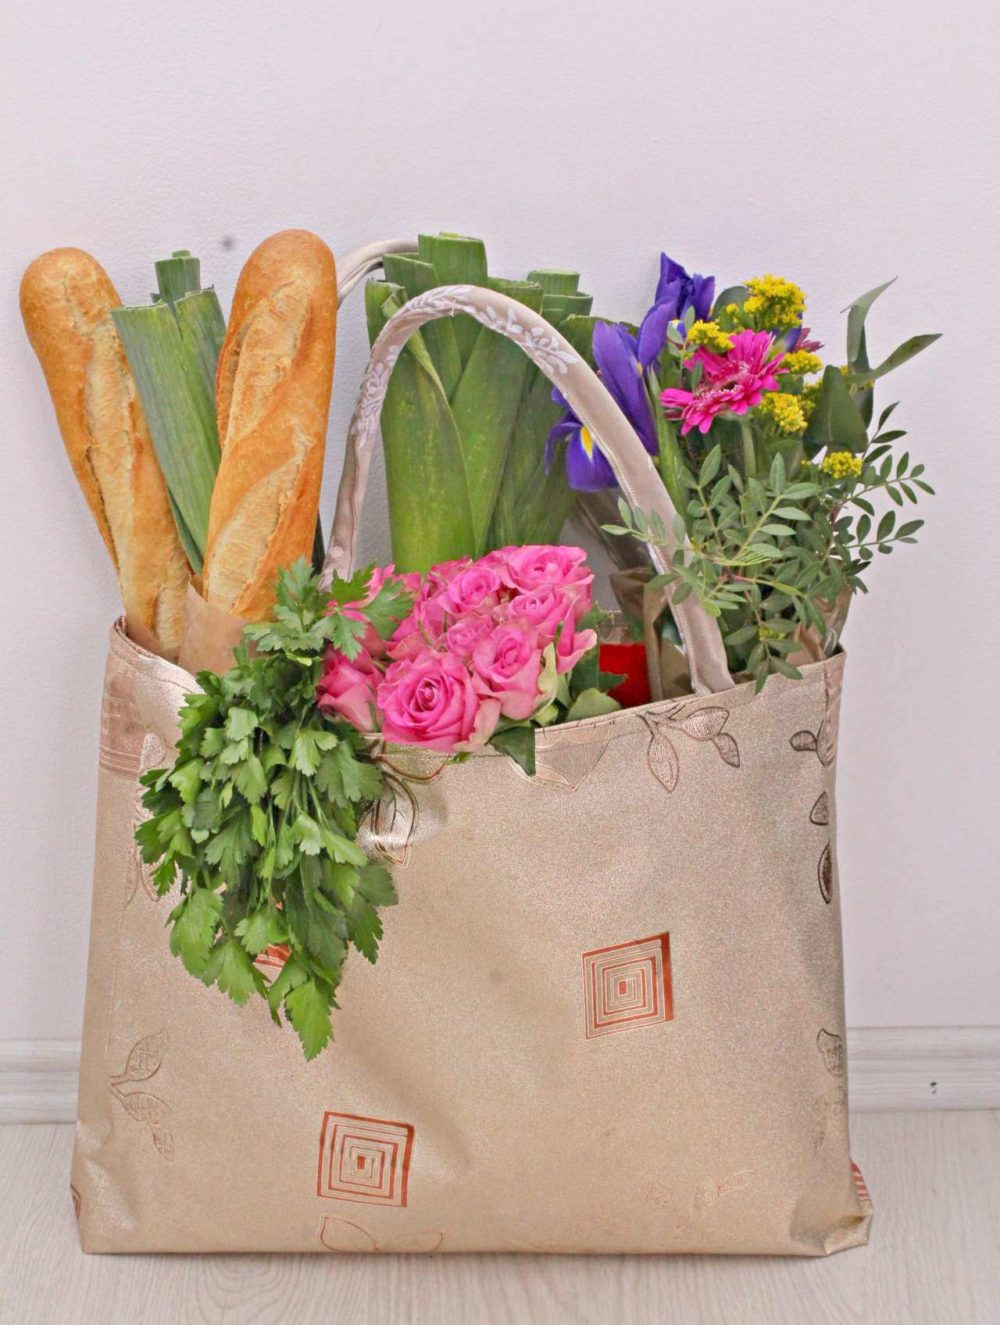 Grocery bag pattern for a reusable tote bag that is made out of vinyl, is reversible, sturdy, roomy and durable.